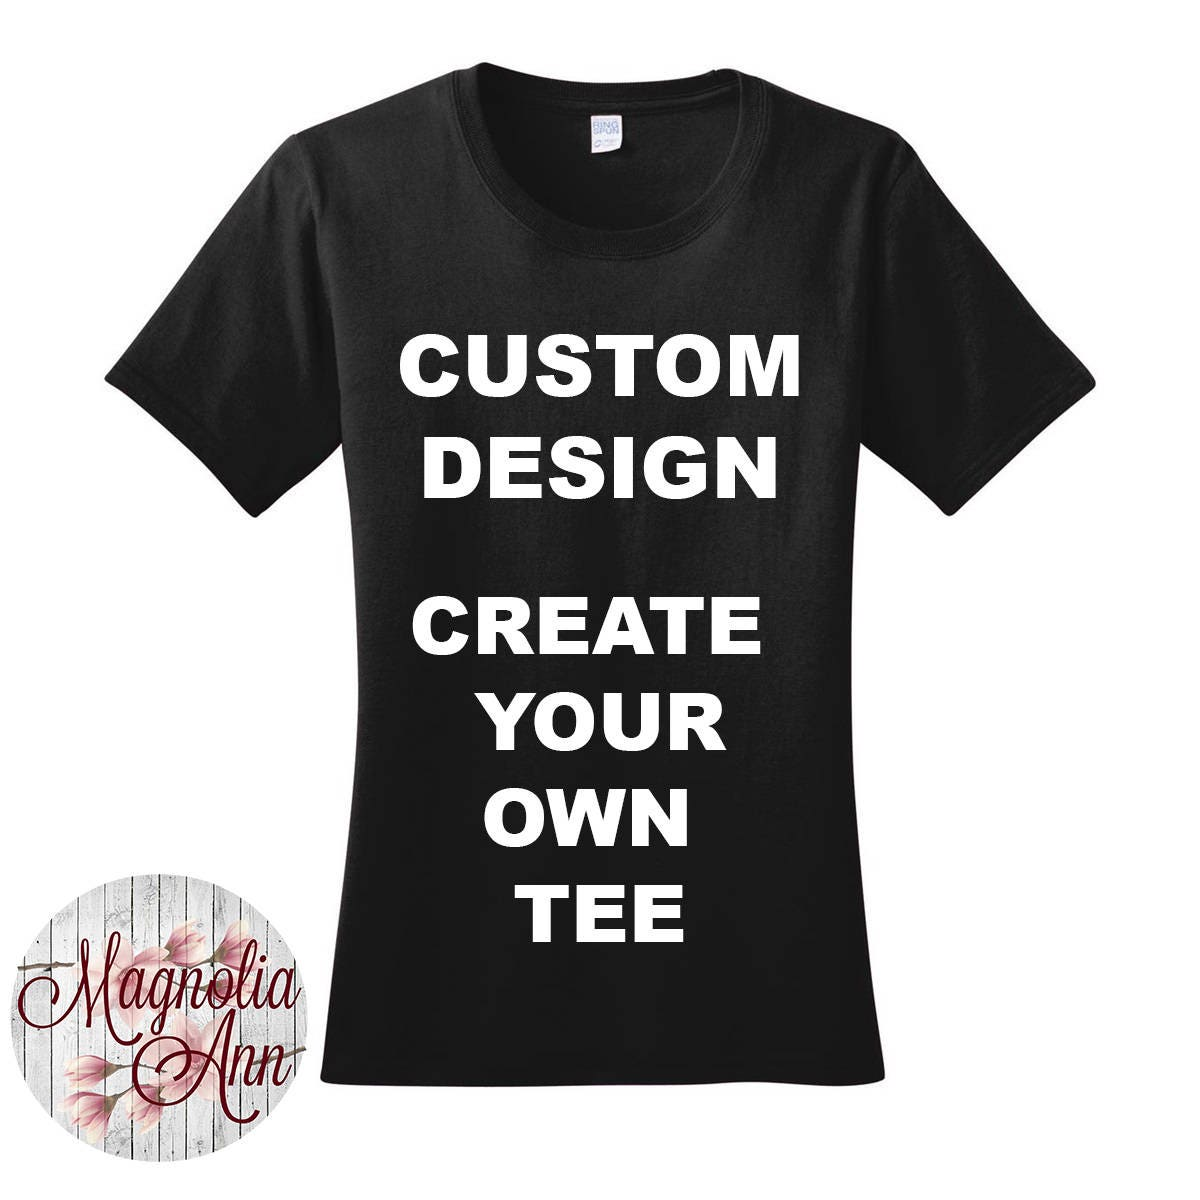 Custom design create your own tee women 39 s crew neck t Build your own t shirts